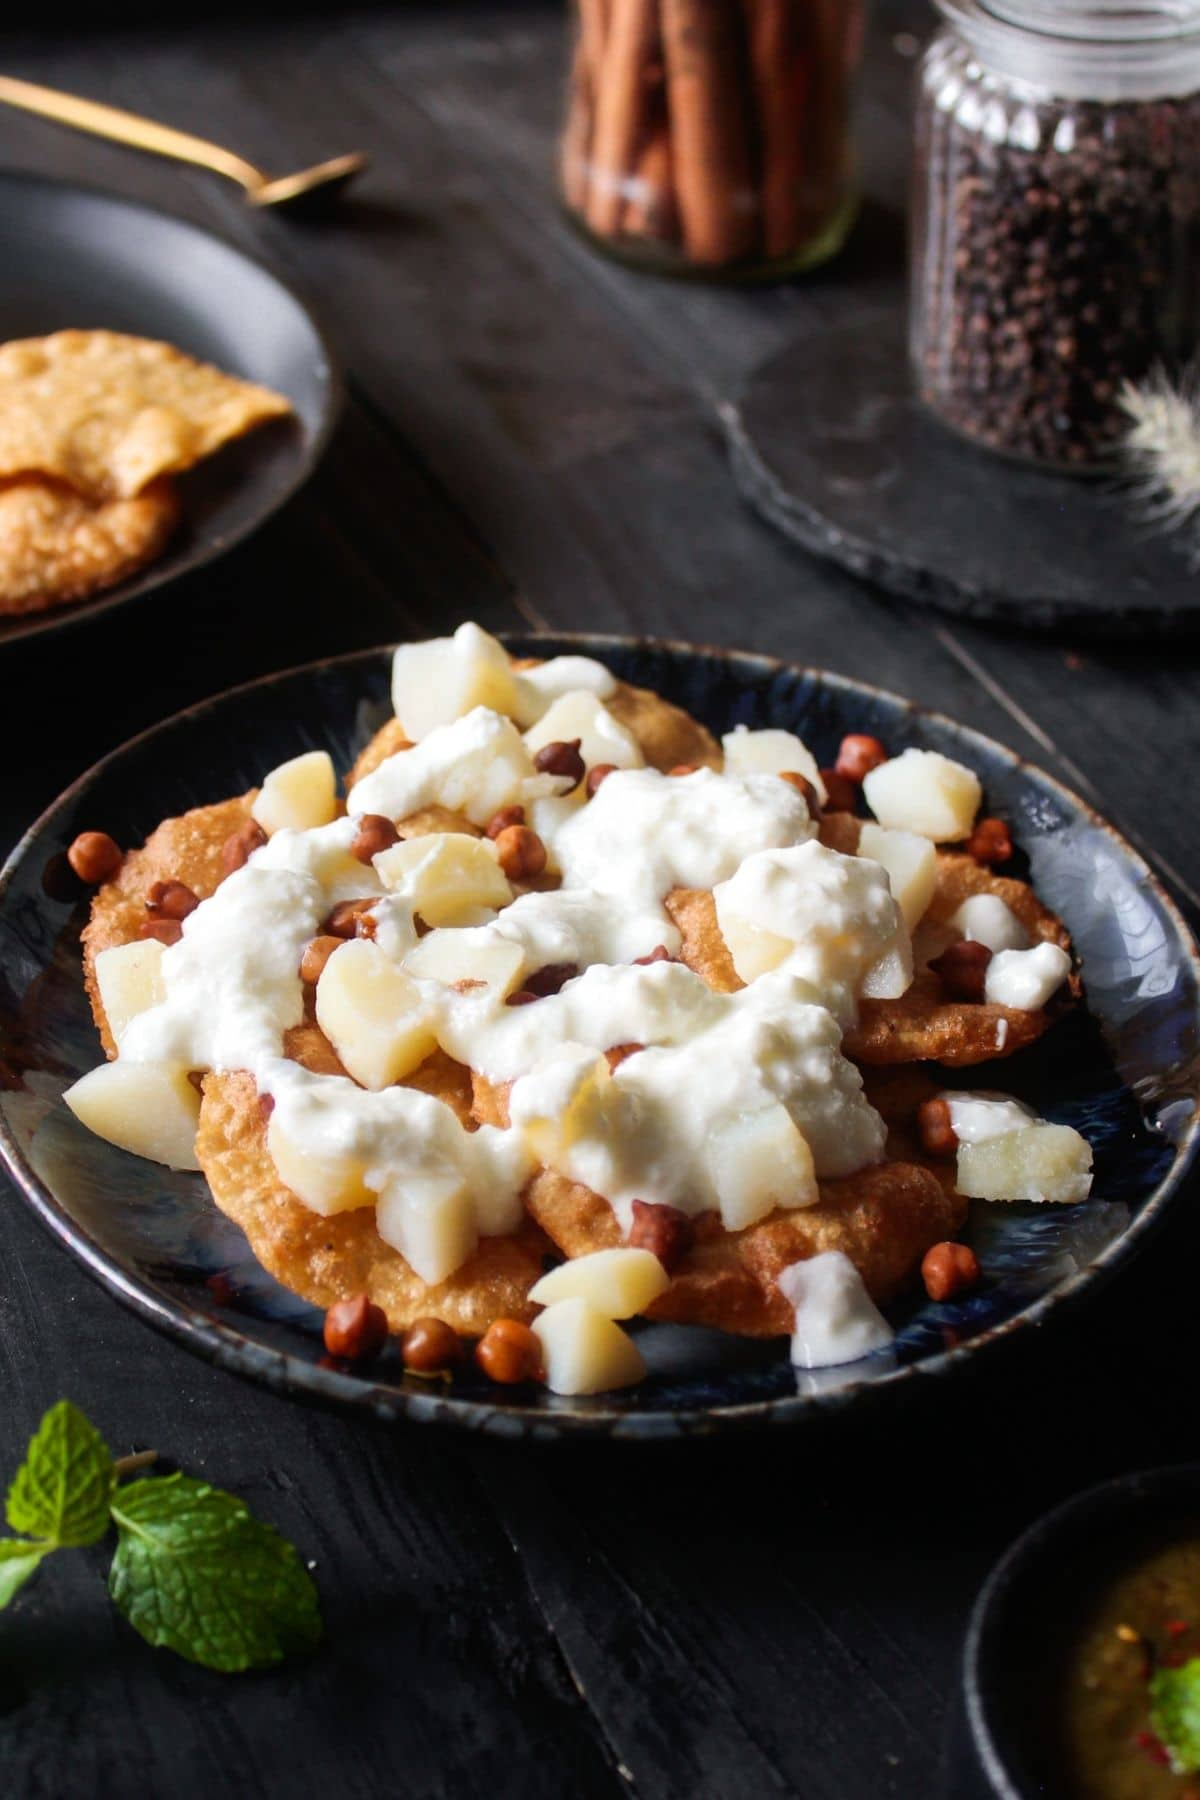 Topping papdi chaat with curd